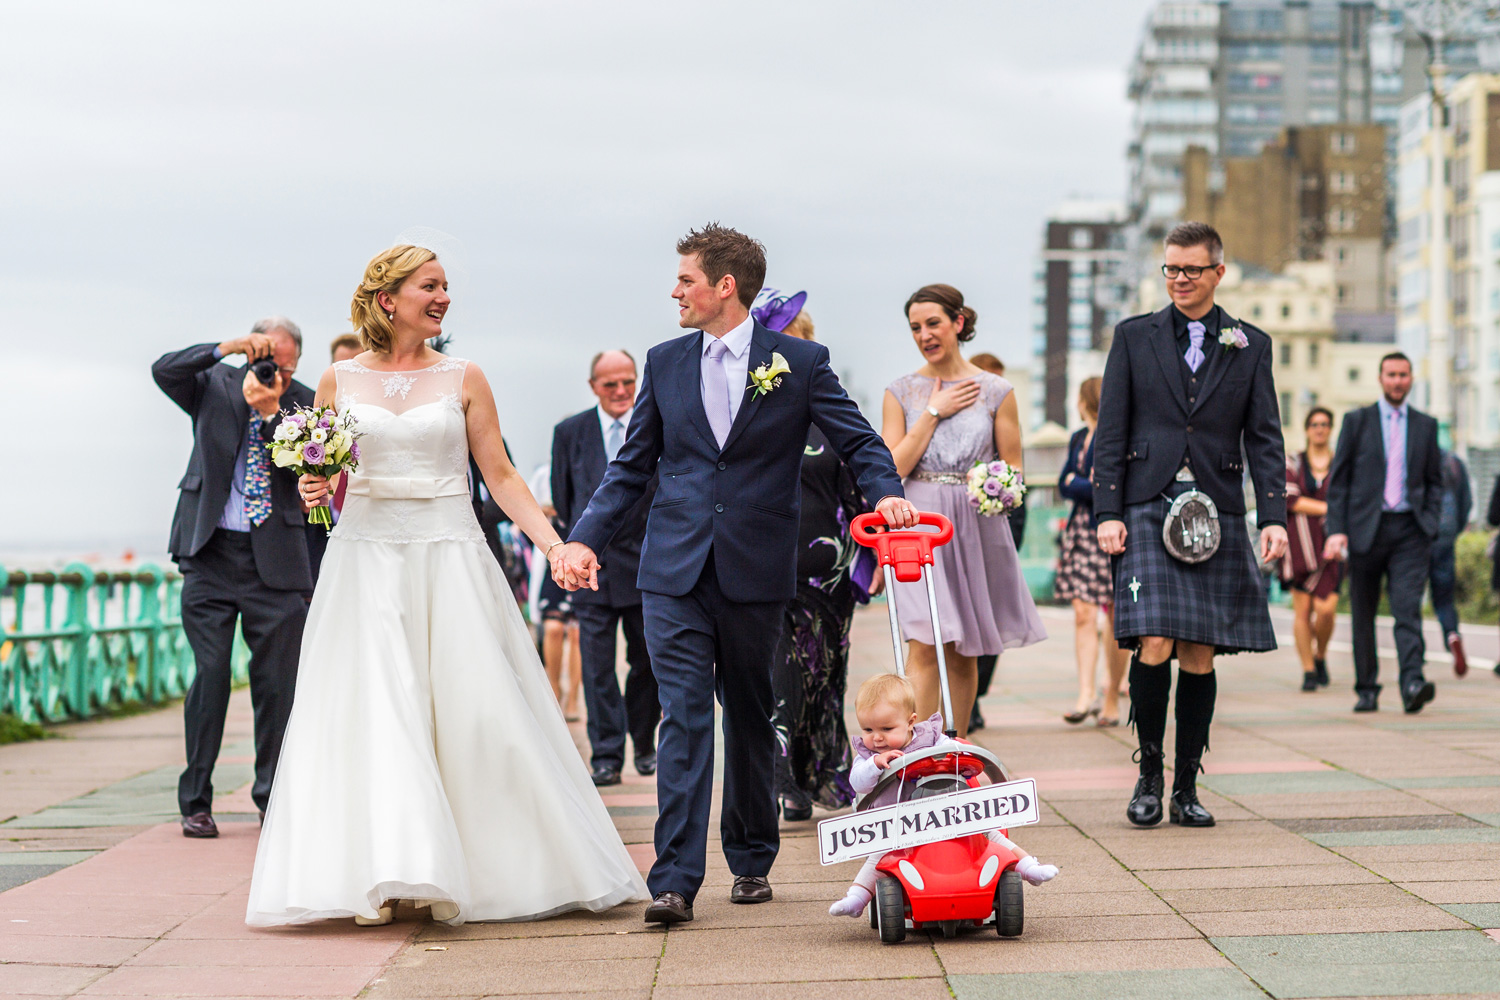 cute photo of bride and groom with daughter